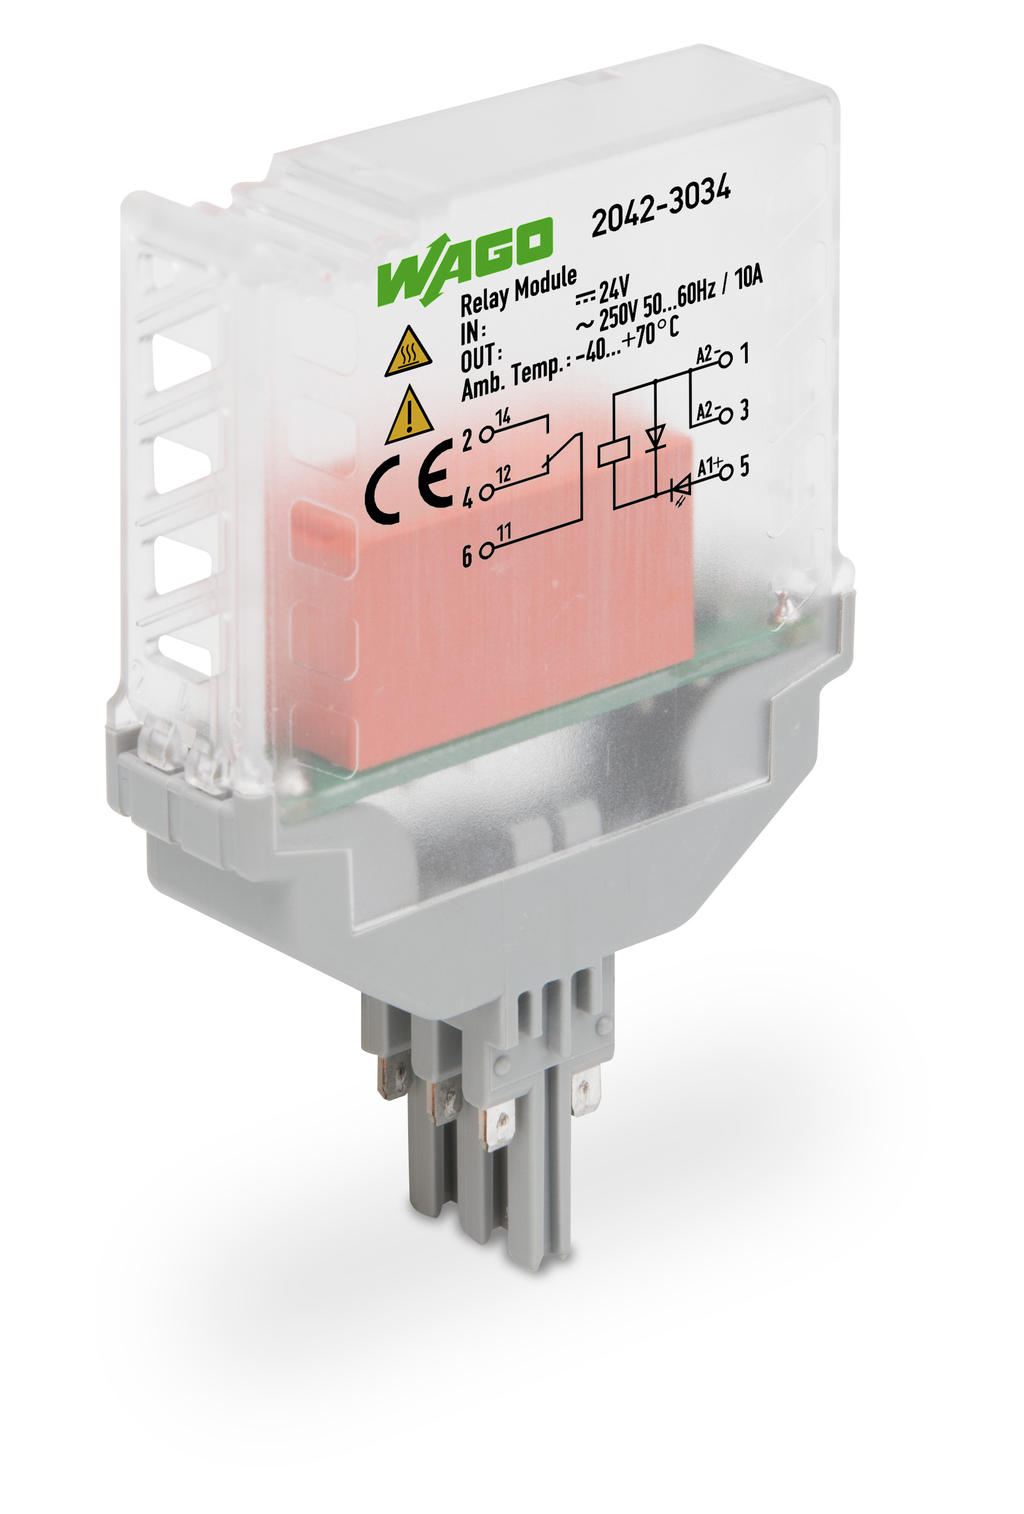 Wago Solid State Relay 2042 7604 Module Input 24 V Dc Output 5 A 3 Conductor Connection Height 15 Mm For Railway Operations